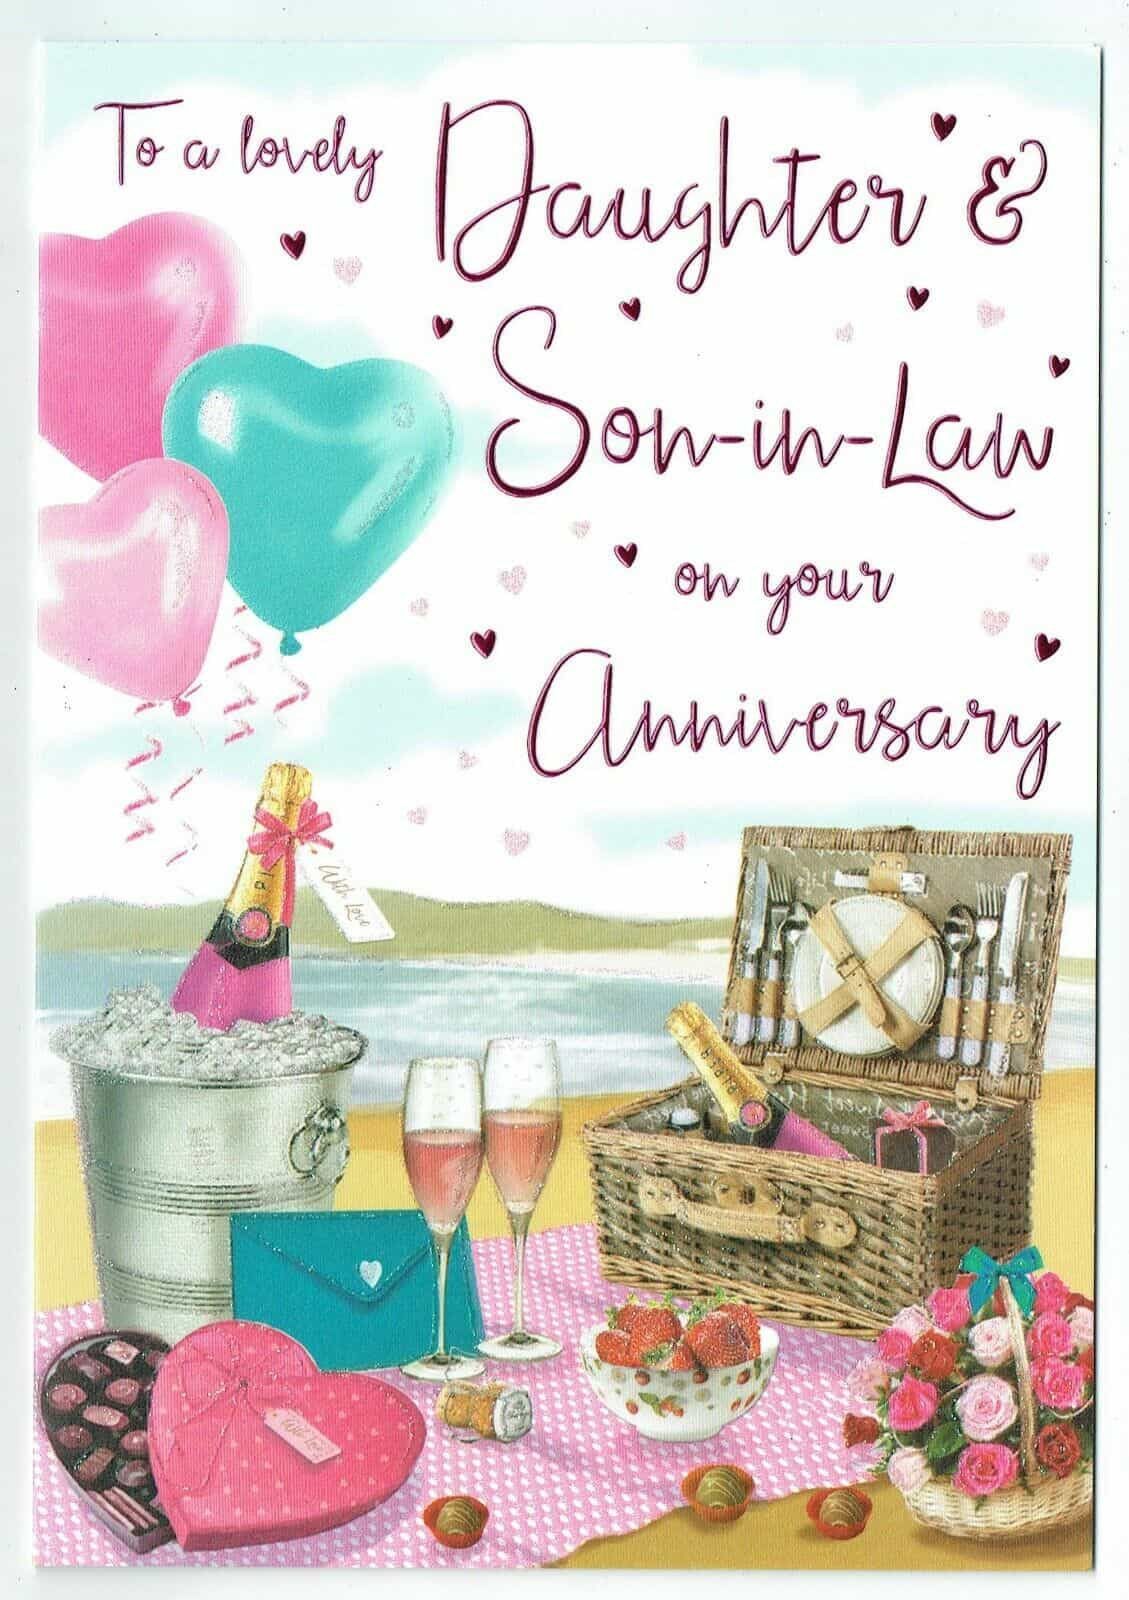 Daughter /& Son In Law On Your Anniversary Champagne  Design Lovely Verse Card